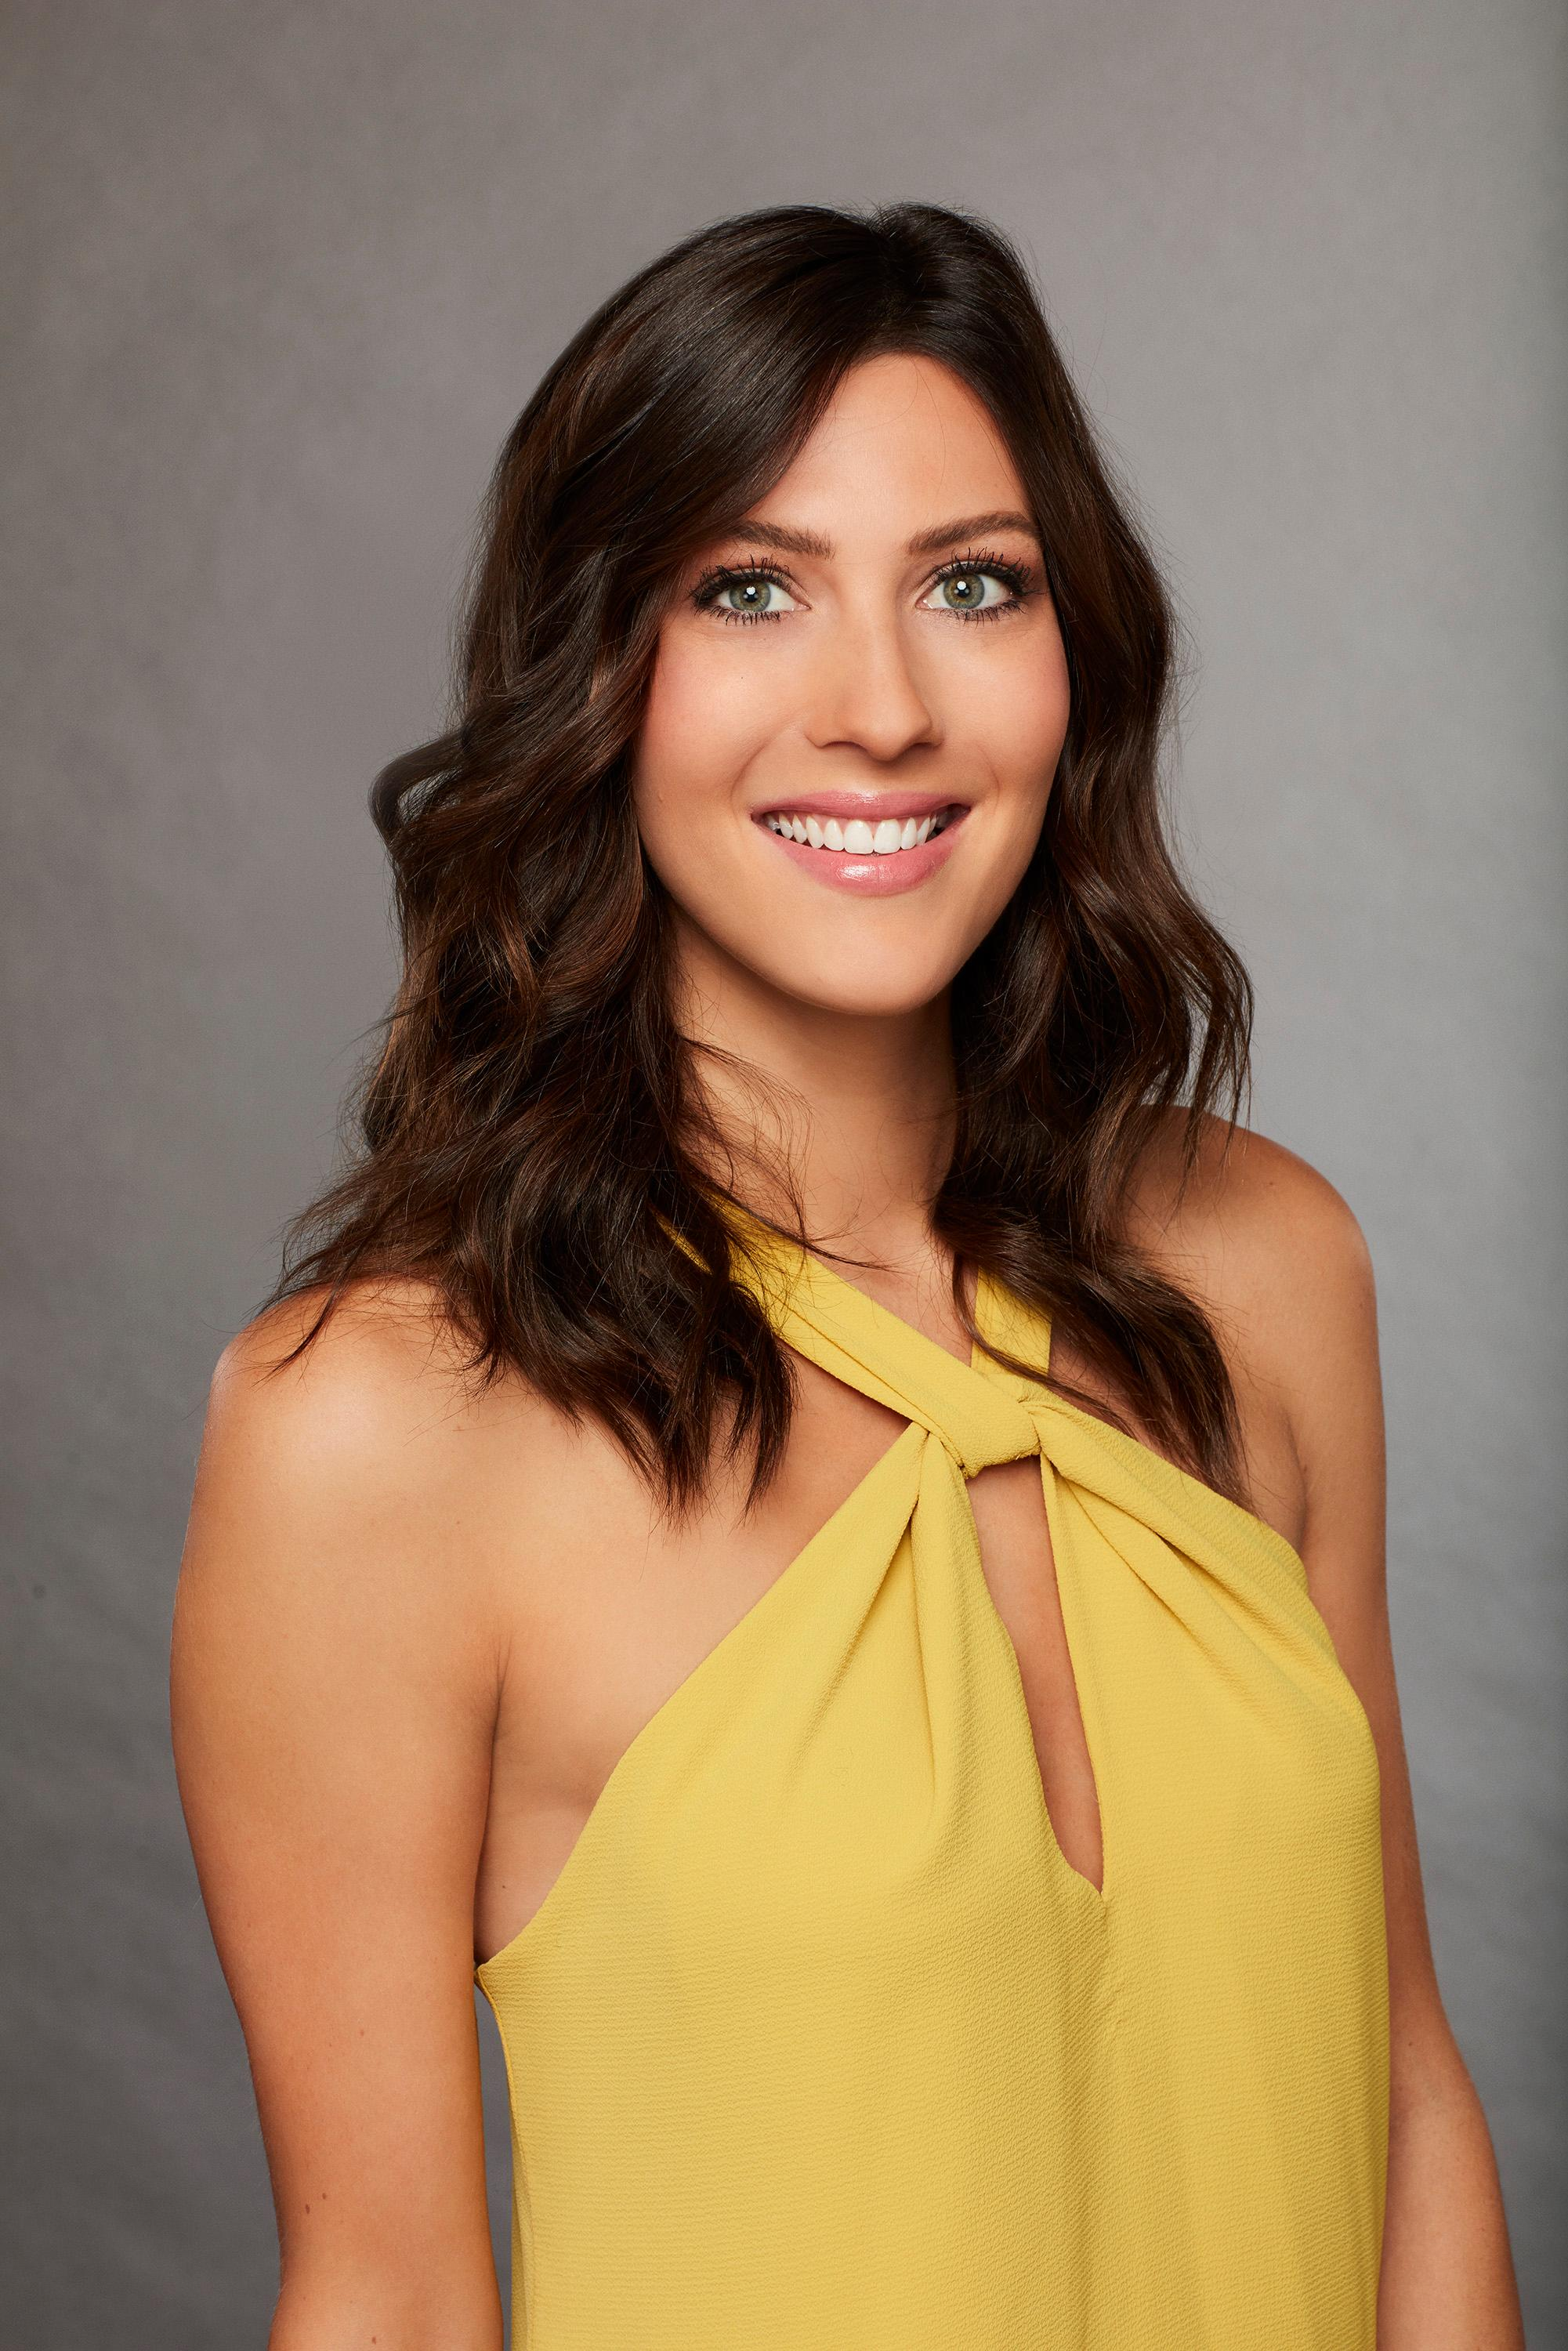 After the dumpster fire that was Arie's season of The Bachelor, I really don't want to give idiot boy one more word of press so let's pretend that the most boring season in the history of the franchise never happened and start talking about the stunning lady that will be the star of season 14 of The Bachelorette! (Image: ABC/Craig Sjodin)